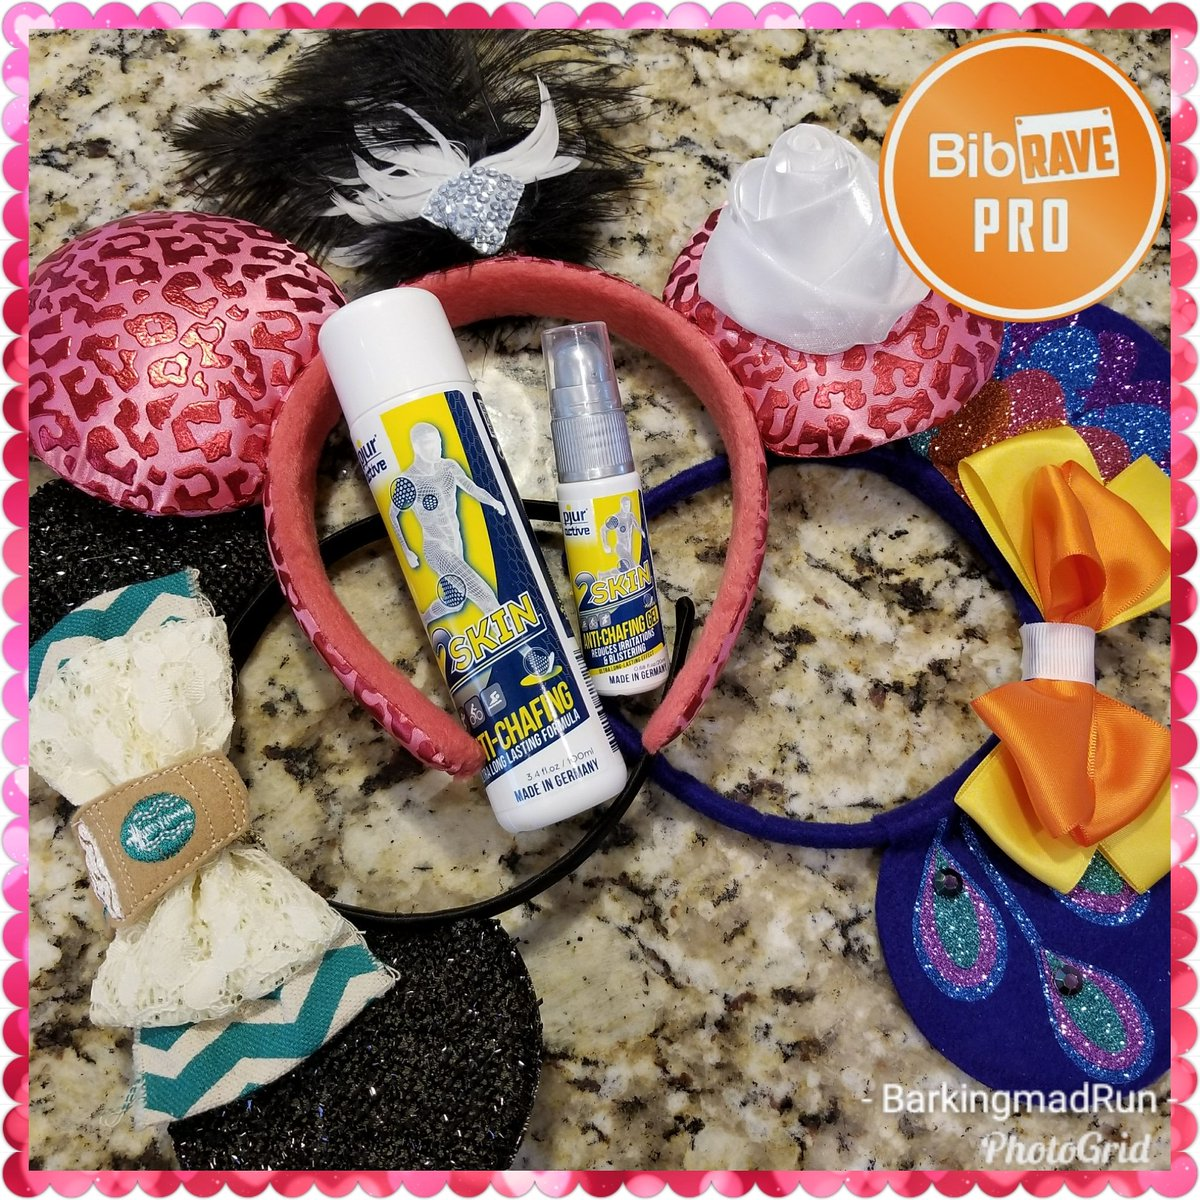 A hot race weekend in Disney calls for @pjuractive in the suitcase! No chafing, blisters, or #showerofdeath for this girl! #chafingisnotmagical #pjuractive2skin #pjuractive #2skin @BibRave #bibchat #bibravepro<br>http://pic.twitter.com/8D5QOdC28k